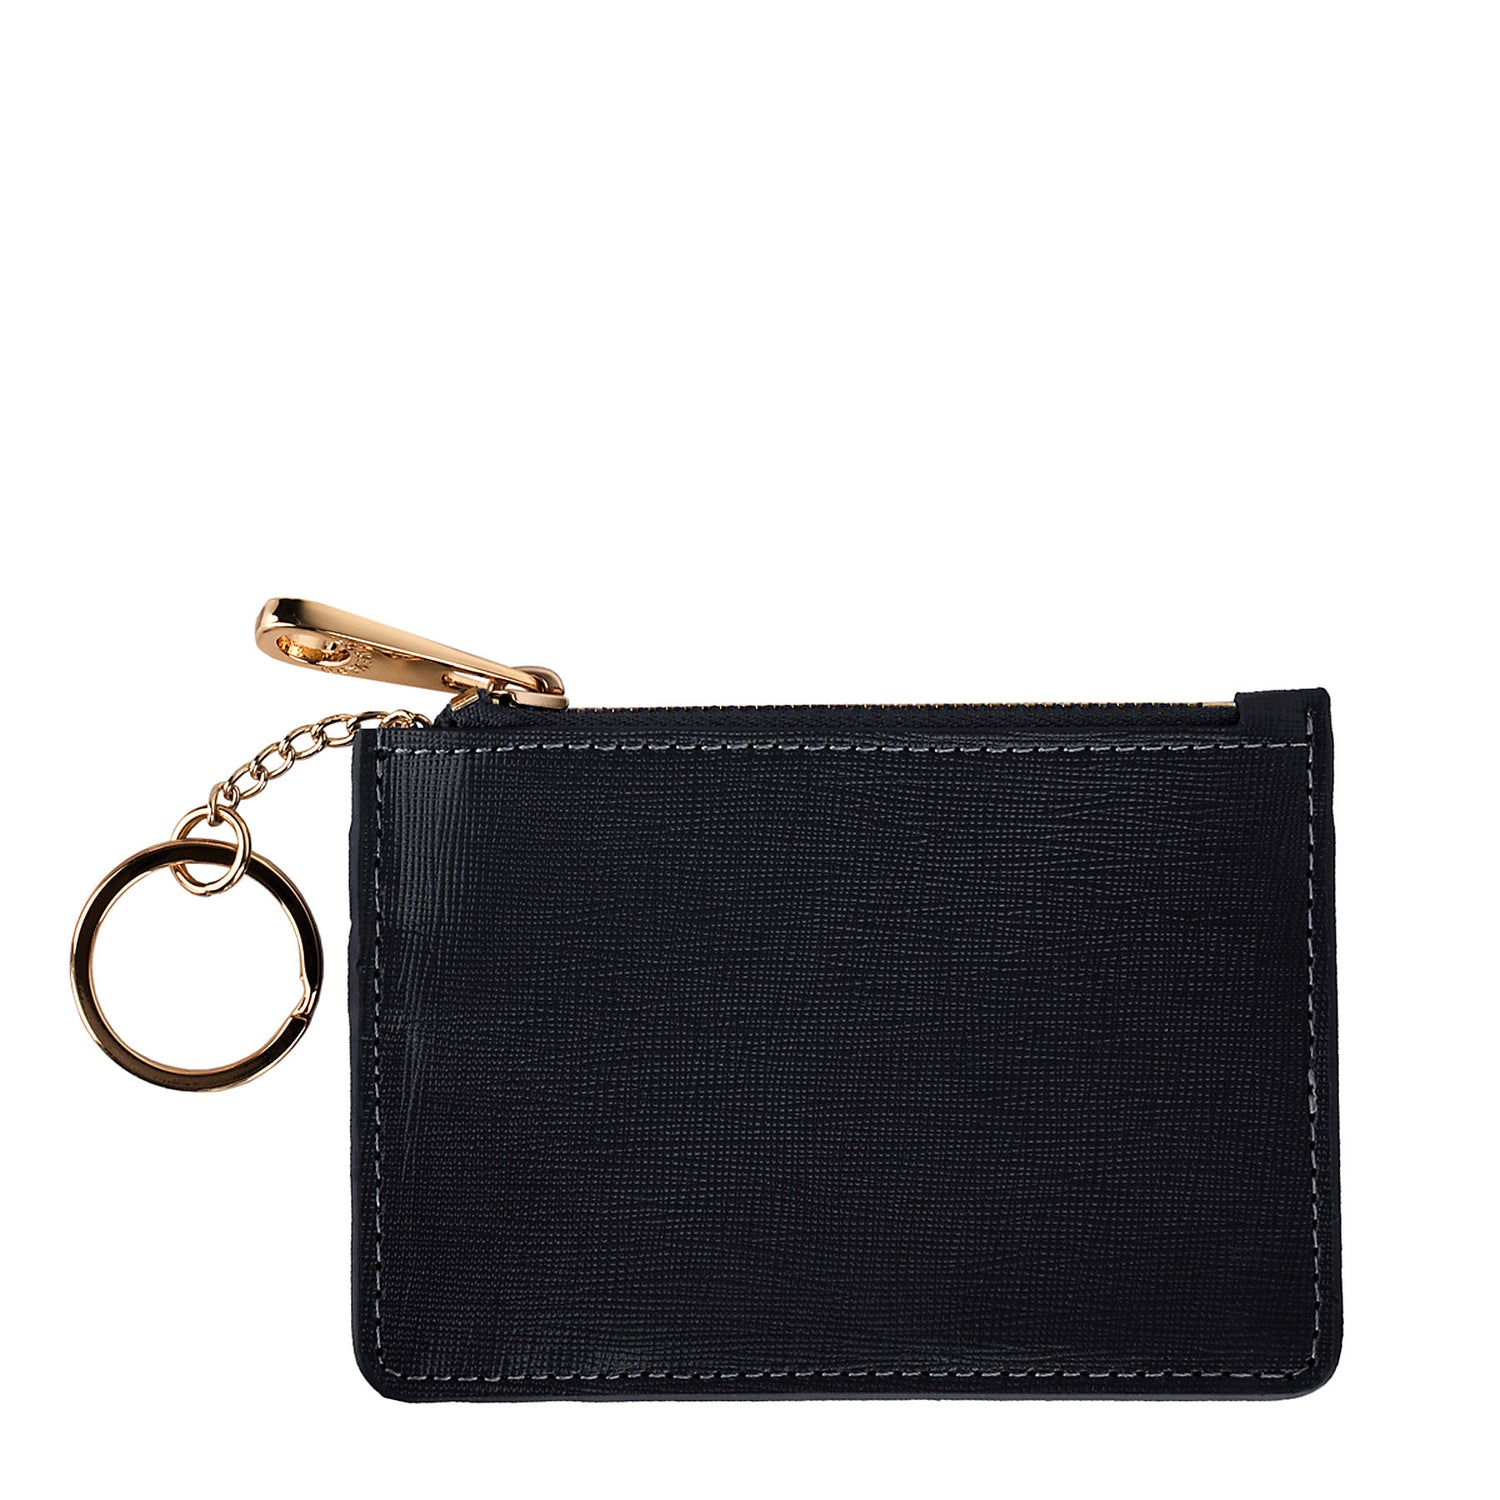 Keychain ID Holder Wallet w/ Monogramming (more colors available)